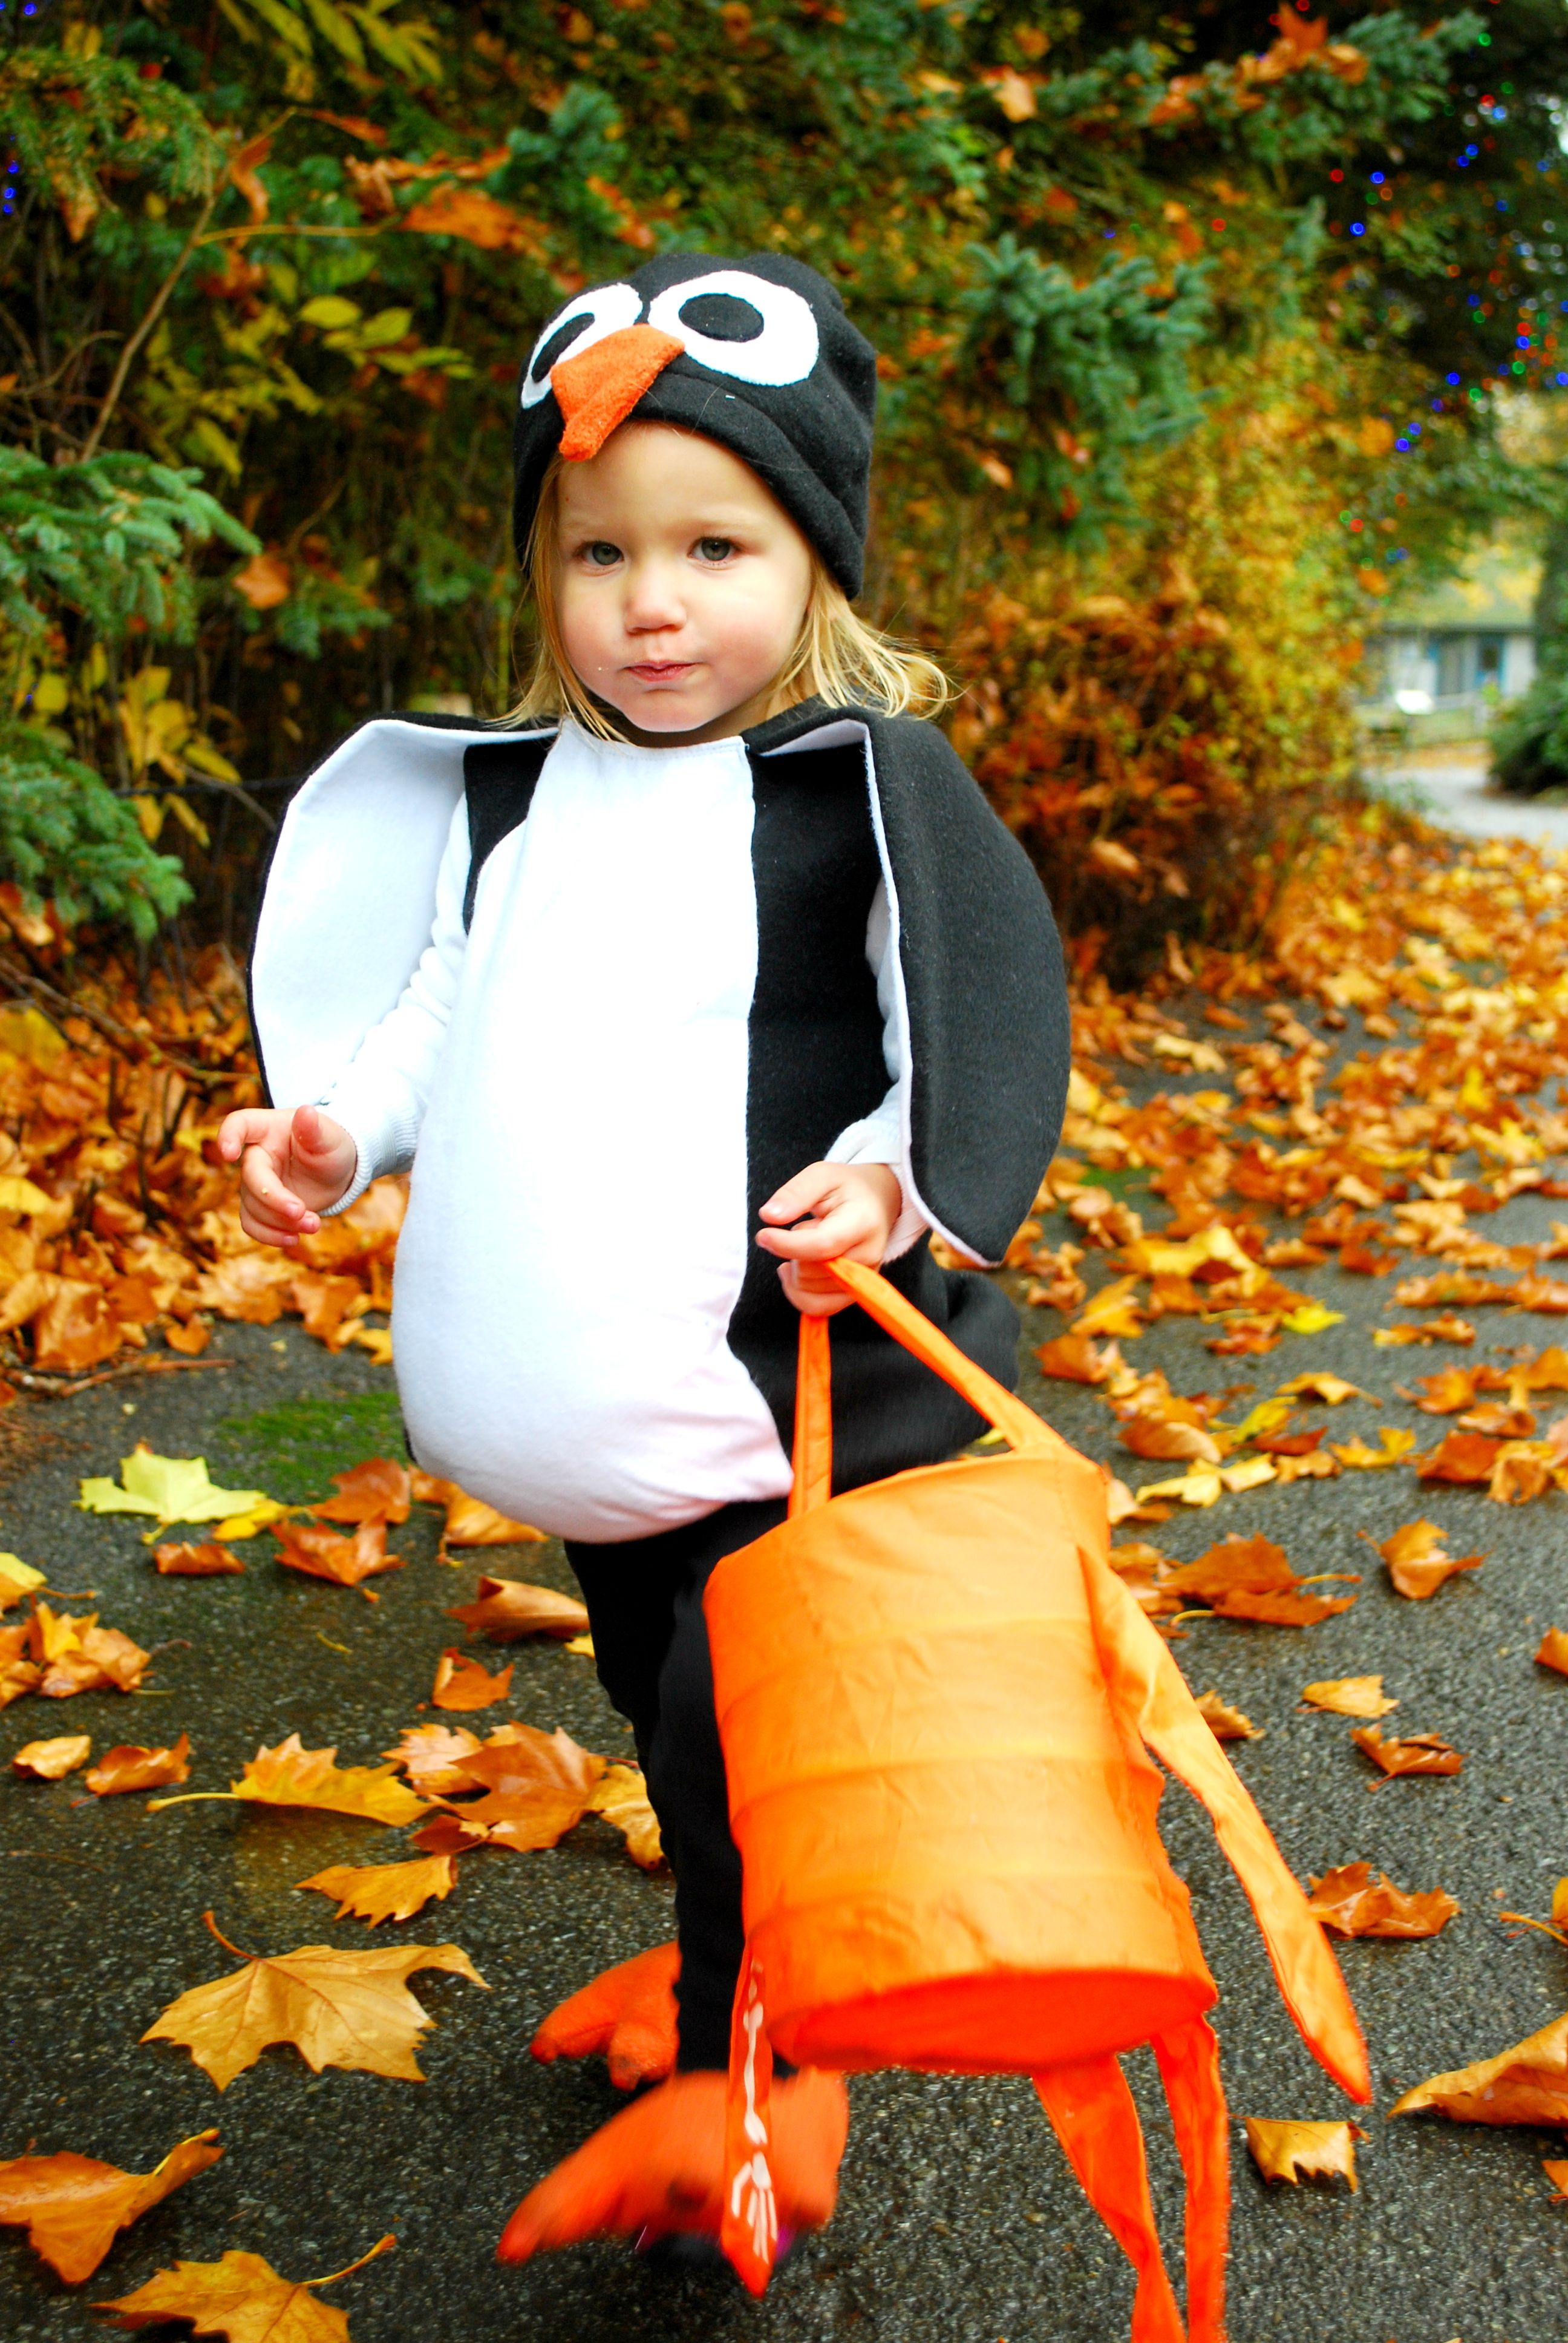 Diy Penguin Halloween Costume Except For A Big Girl Not A